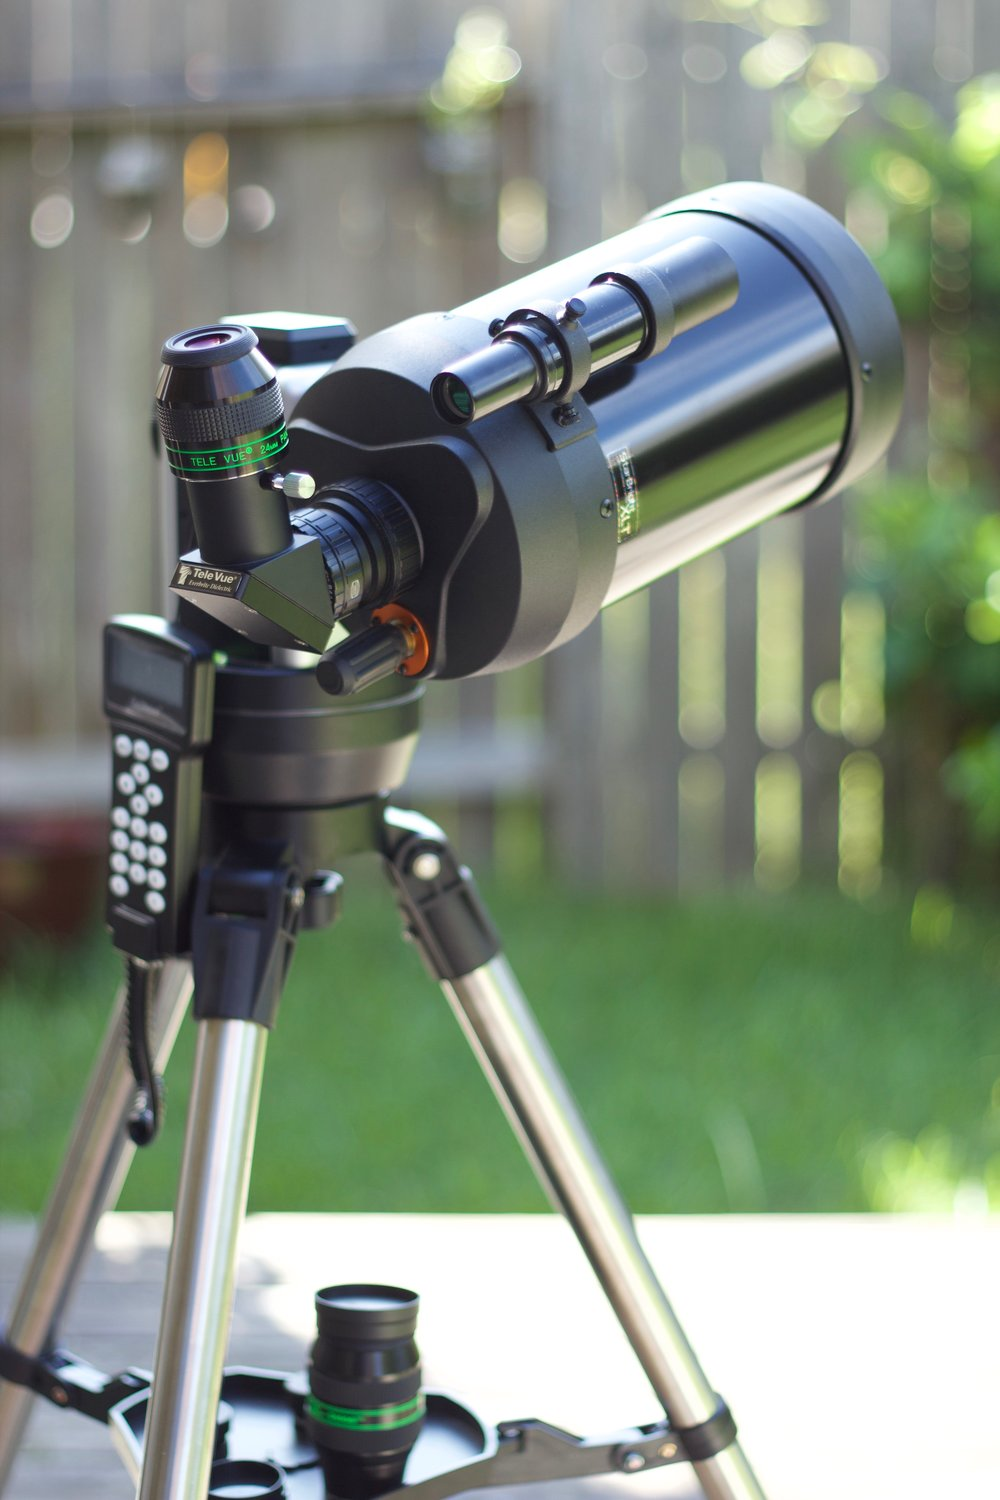 The Celestron C5 Spotting Scope, with iOptron Cube Pro Alt-Az GoTo mount, TeleVue Everbright diagonal, and the TeleVue Panoptic 24mm eye piece.